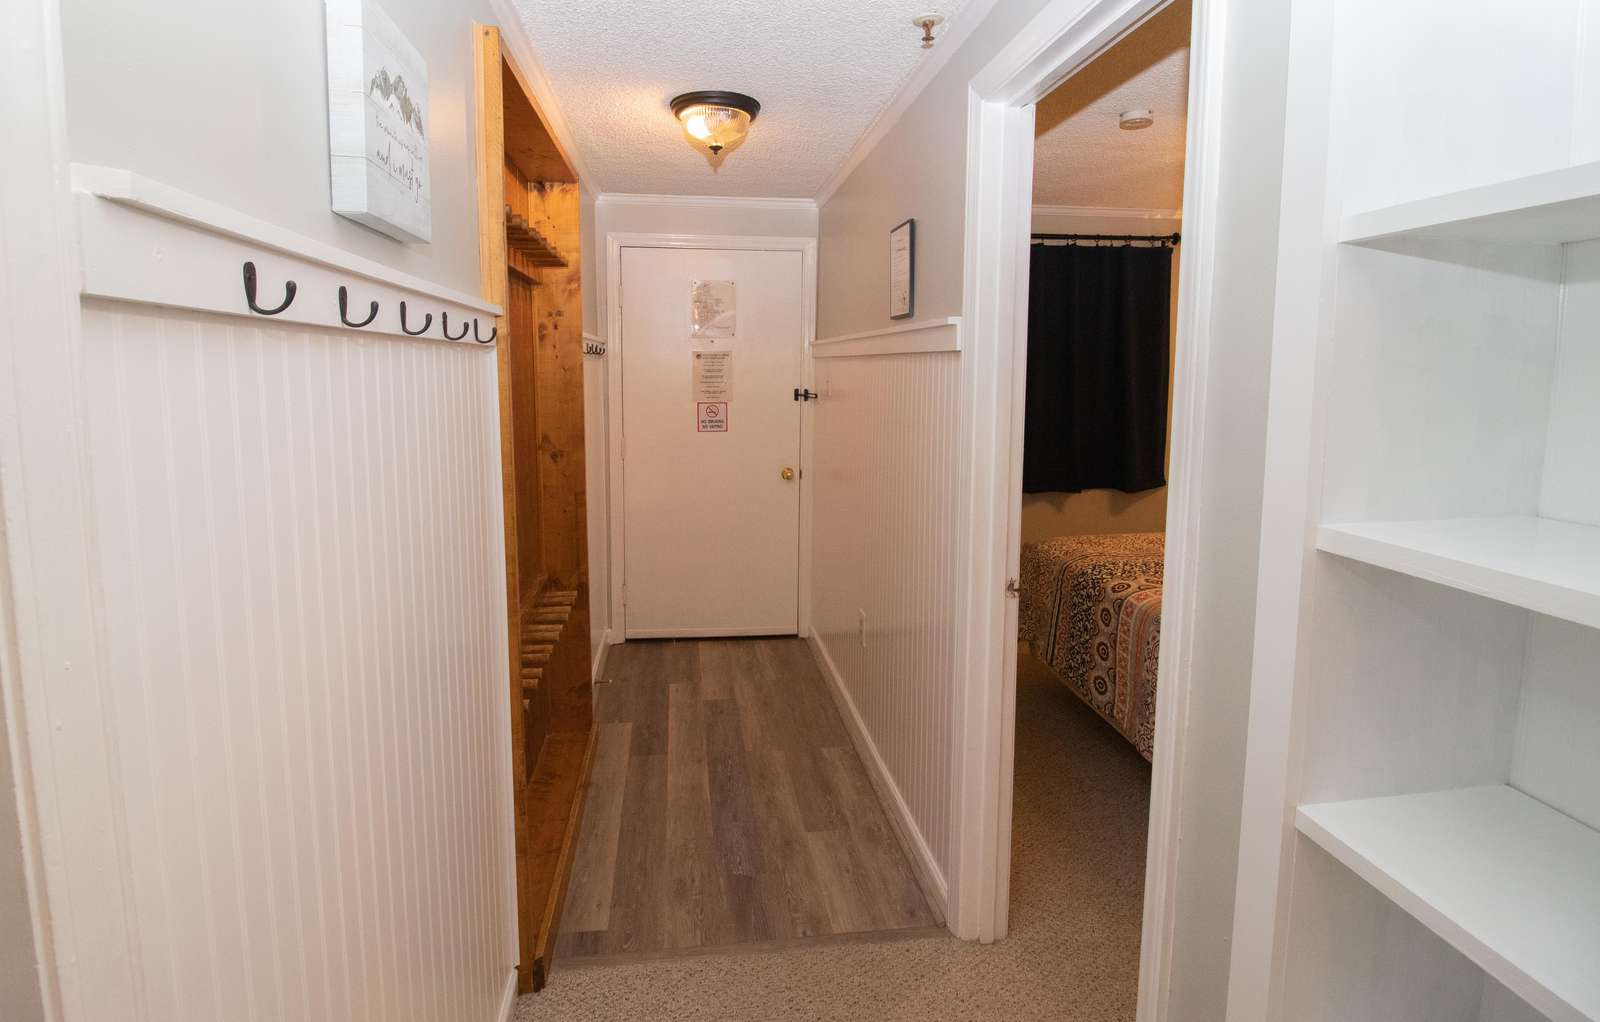 Recessed ski rack in hallway - safely store your gear inside the unit!